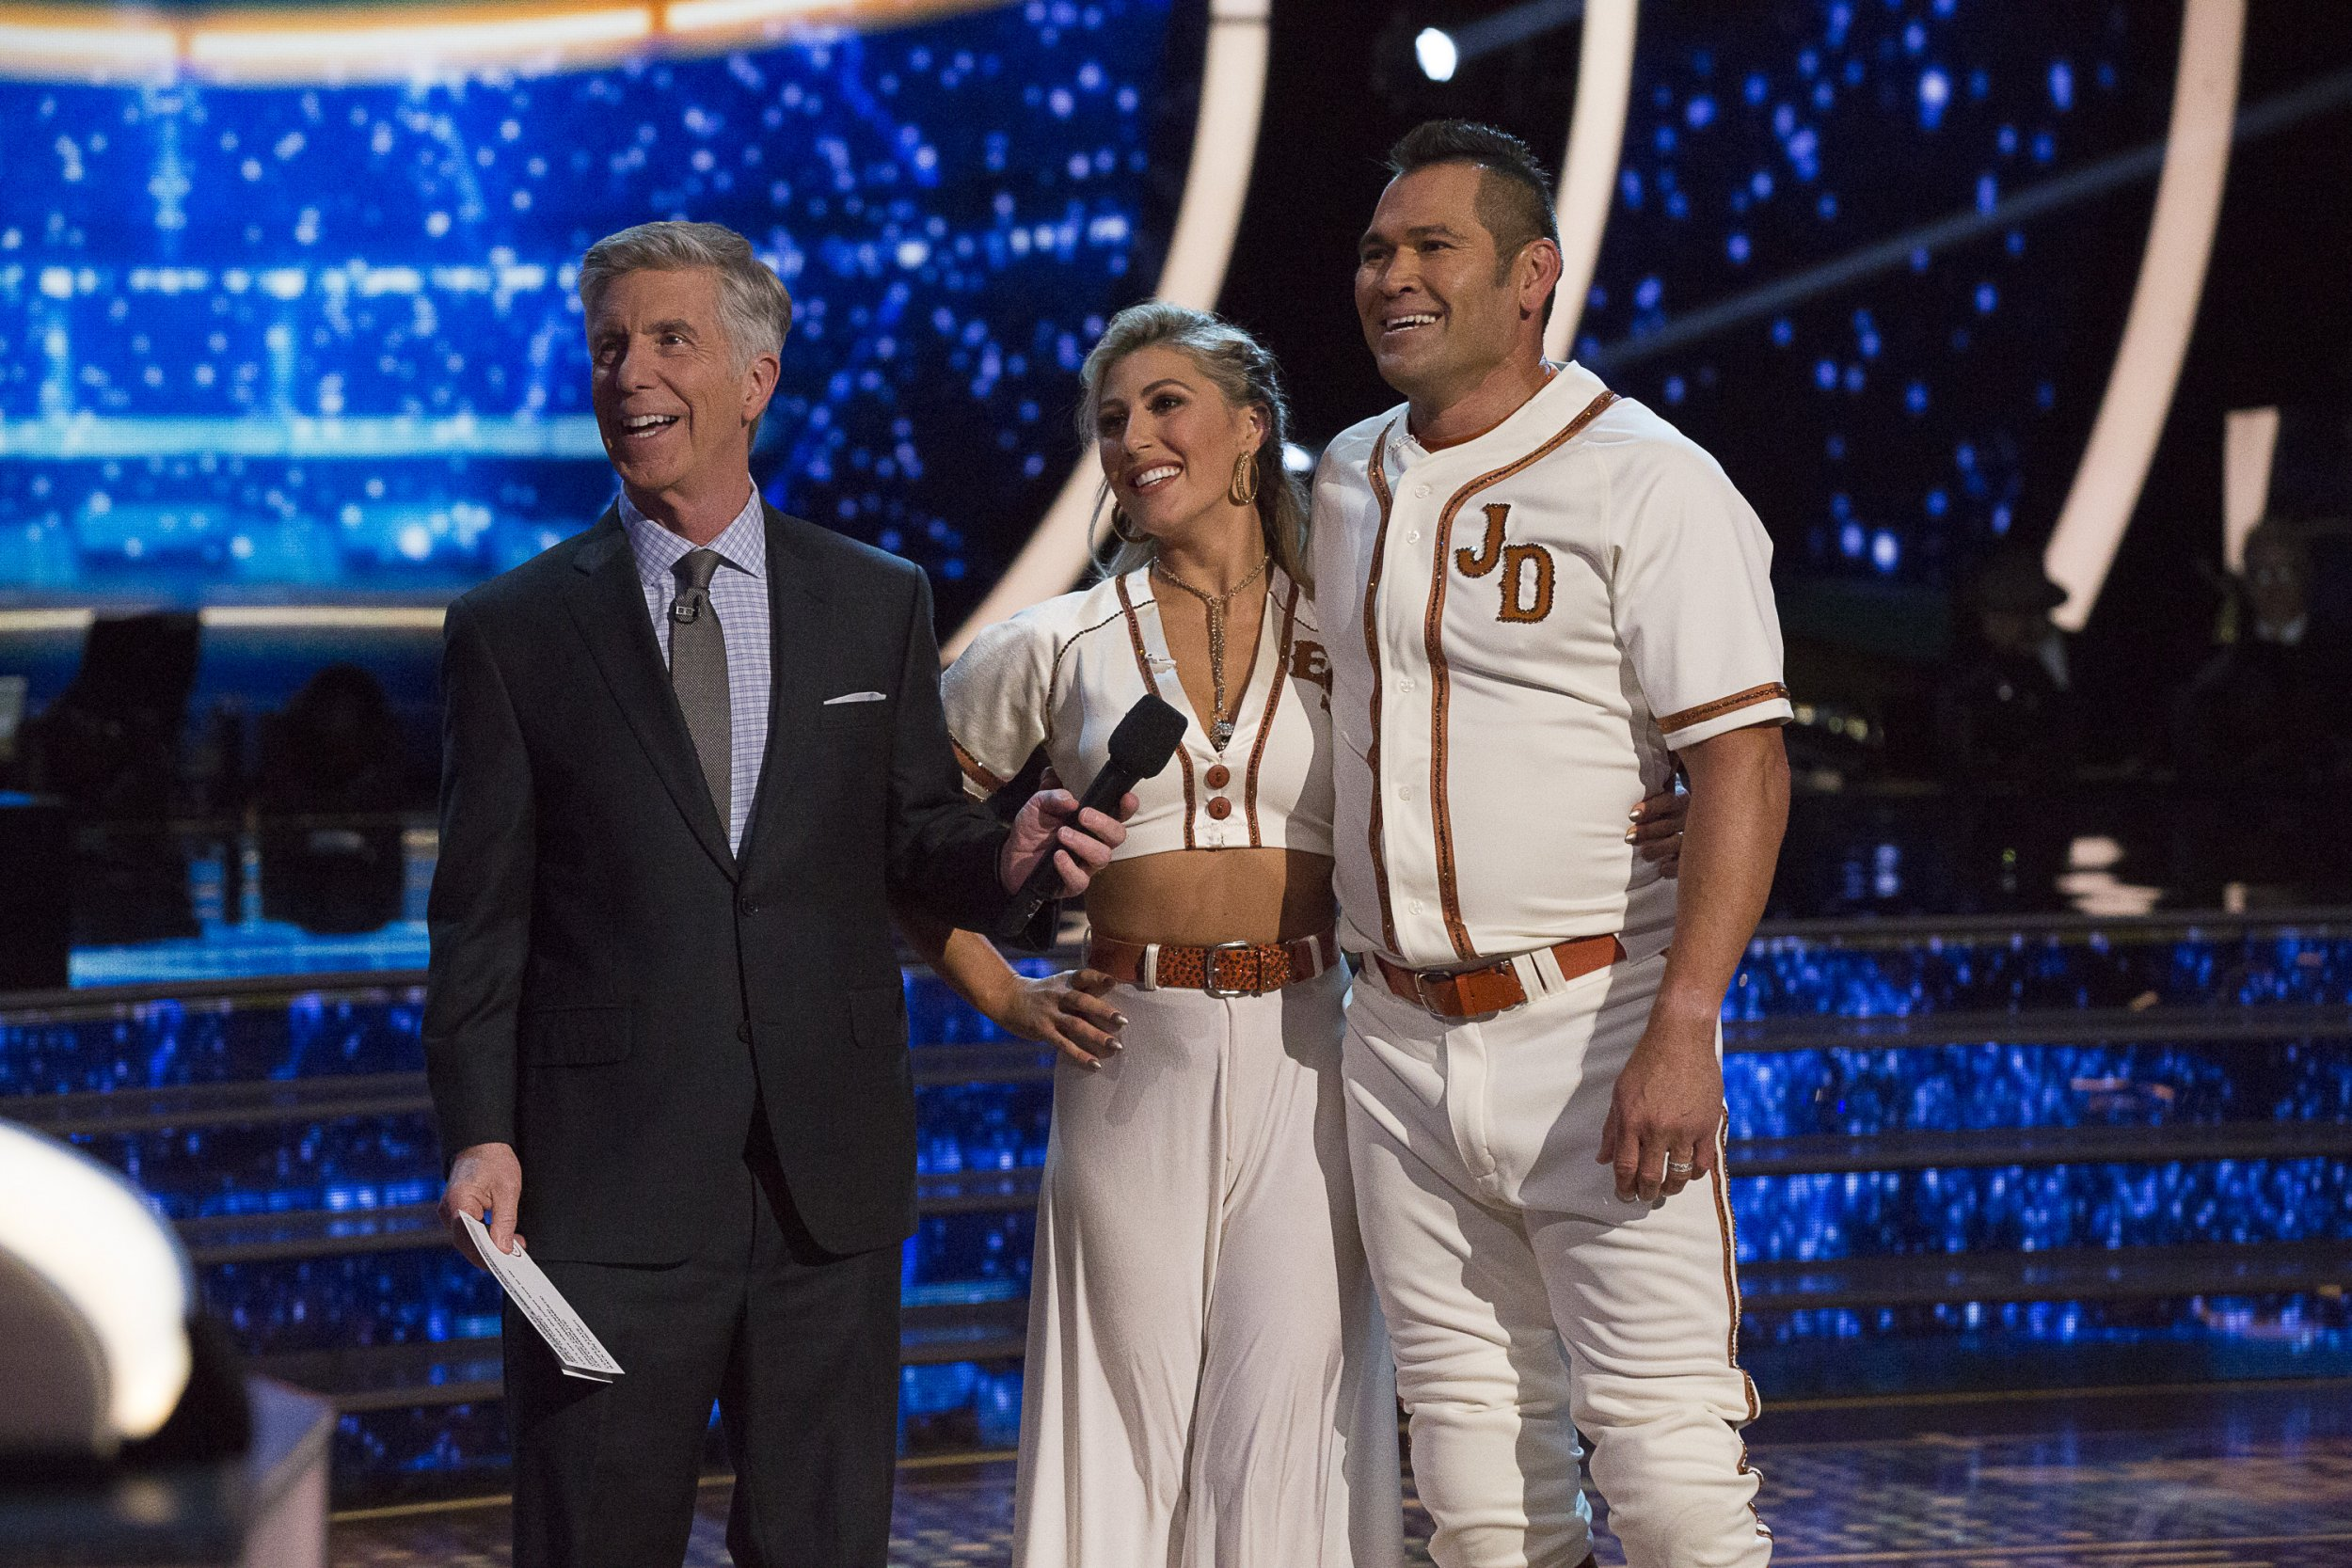 Dancing with the stars who got eliminated